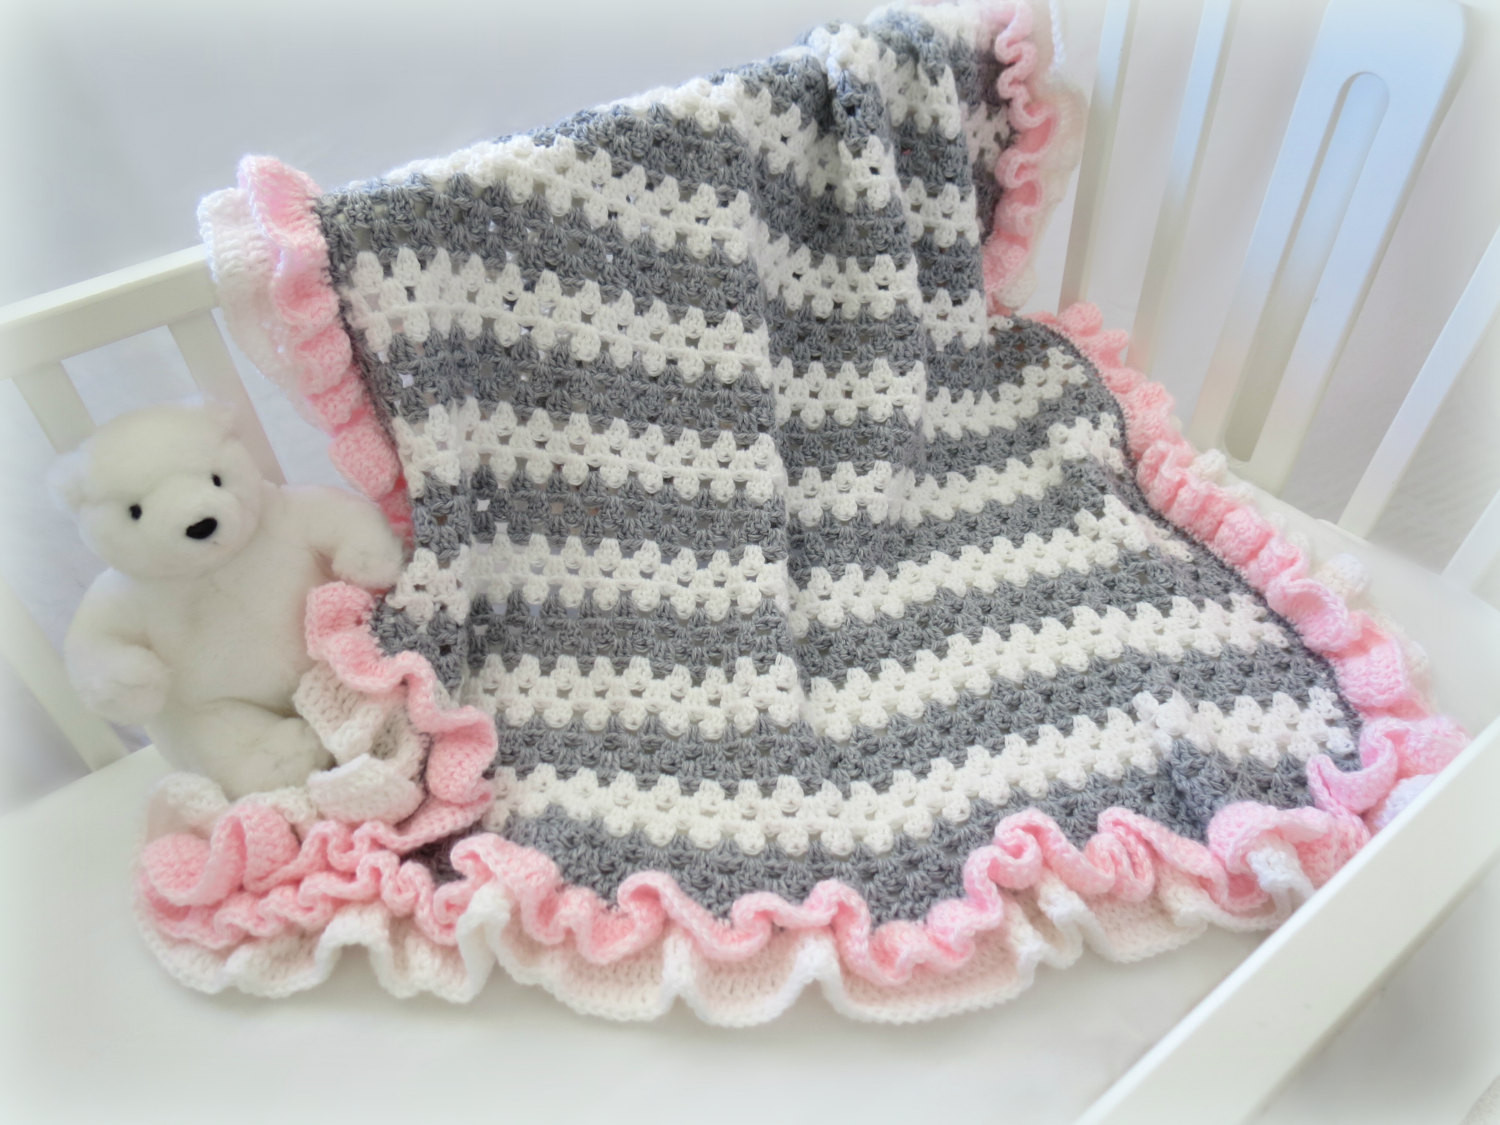 Crochet Baby Blanket Patterns Best Of Crochet Baby Blanket Pattern Baby Crochet Blanket Afghan Of Fresh 44 Models Crochet Baby Blanket Patterns